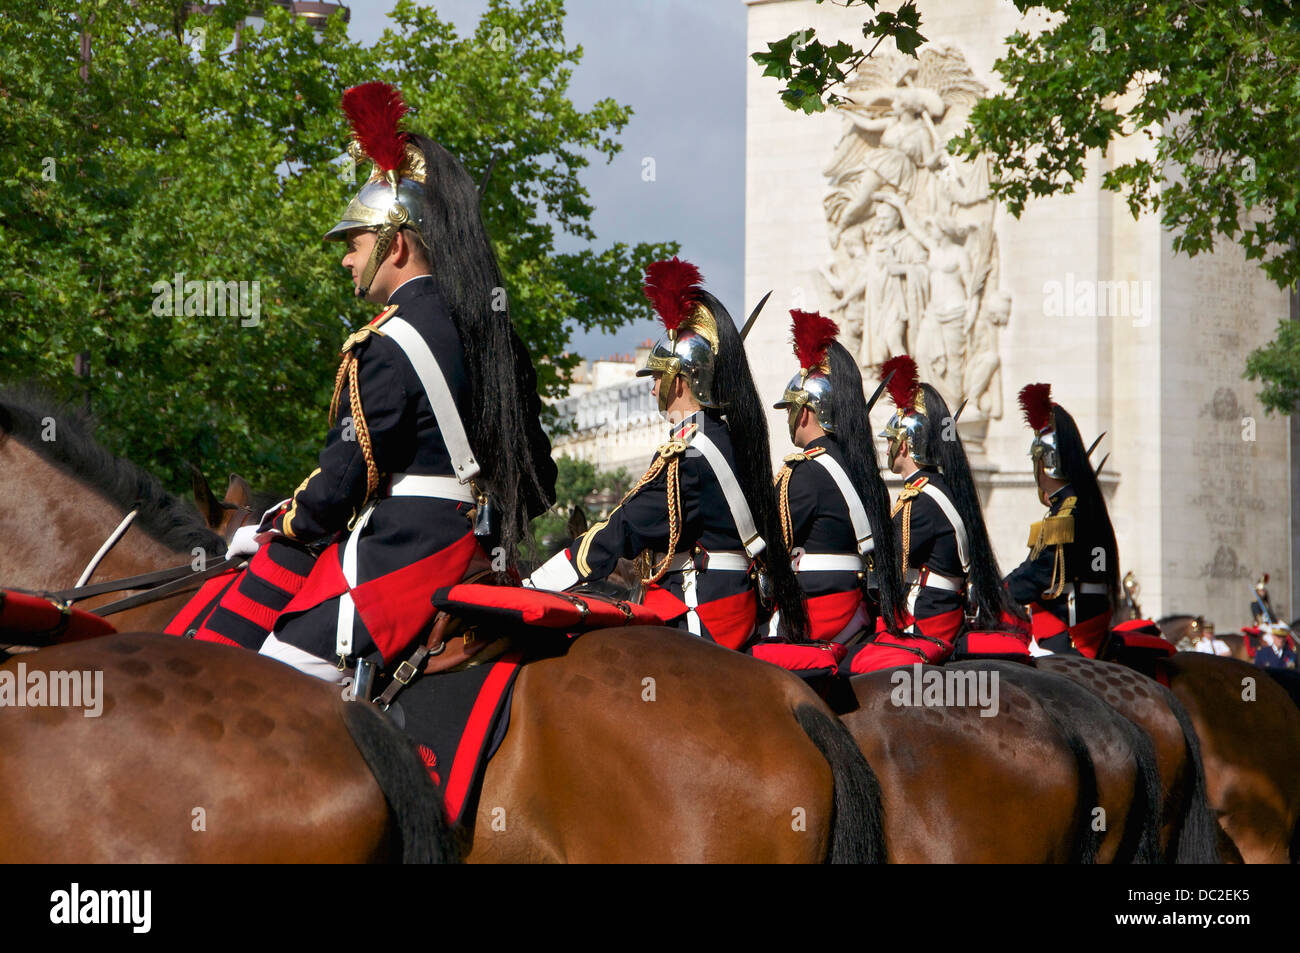 Elements of the cavalry regiment of the french 'Garde Républicaine'. In background, detail of the Arc - Stock Image